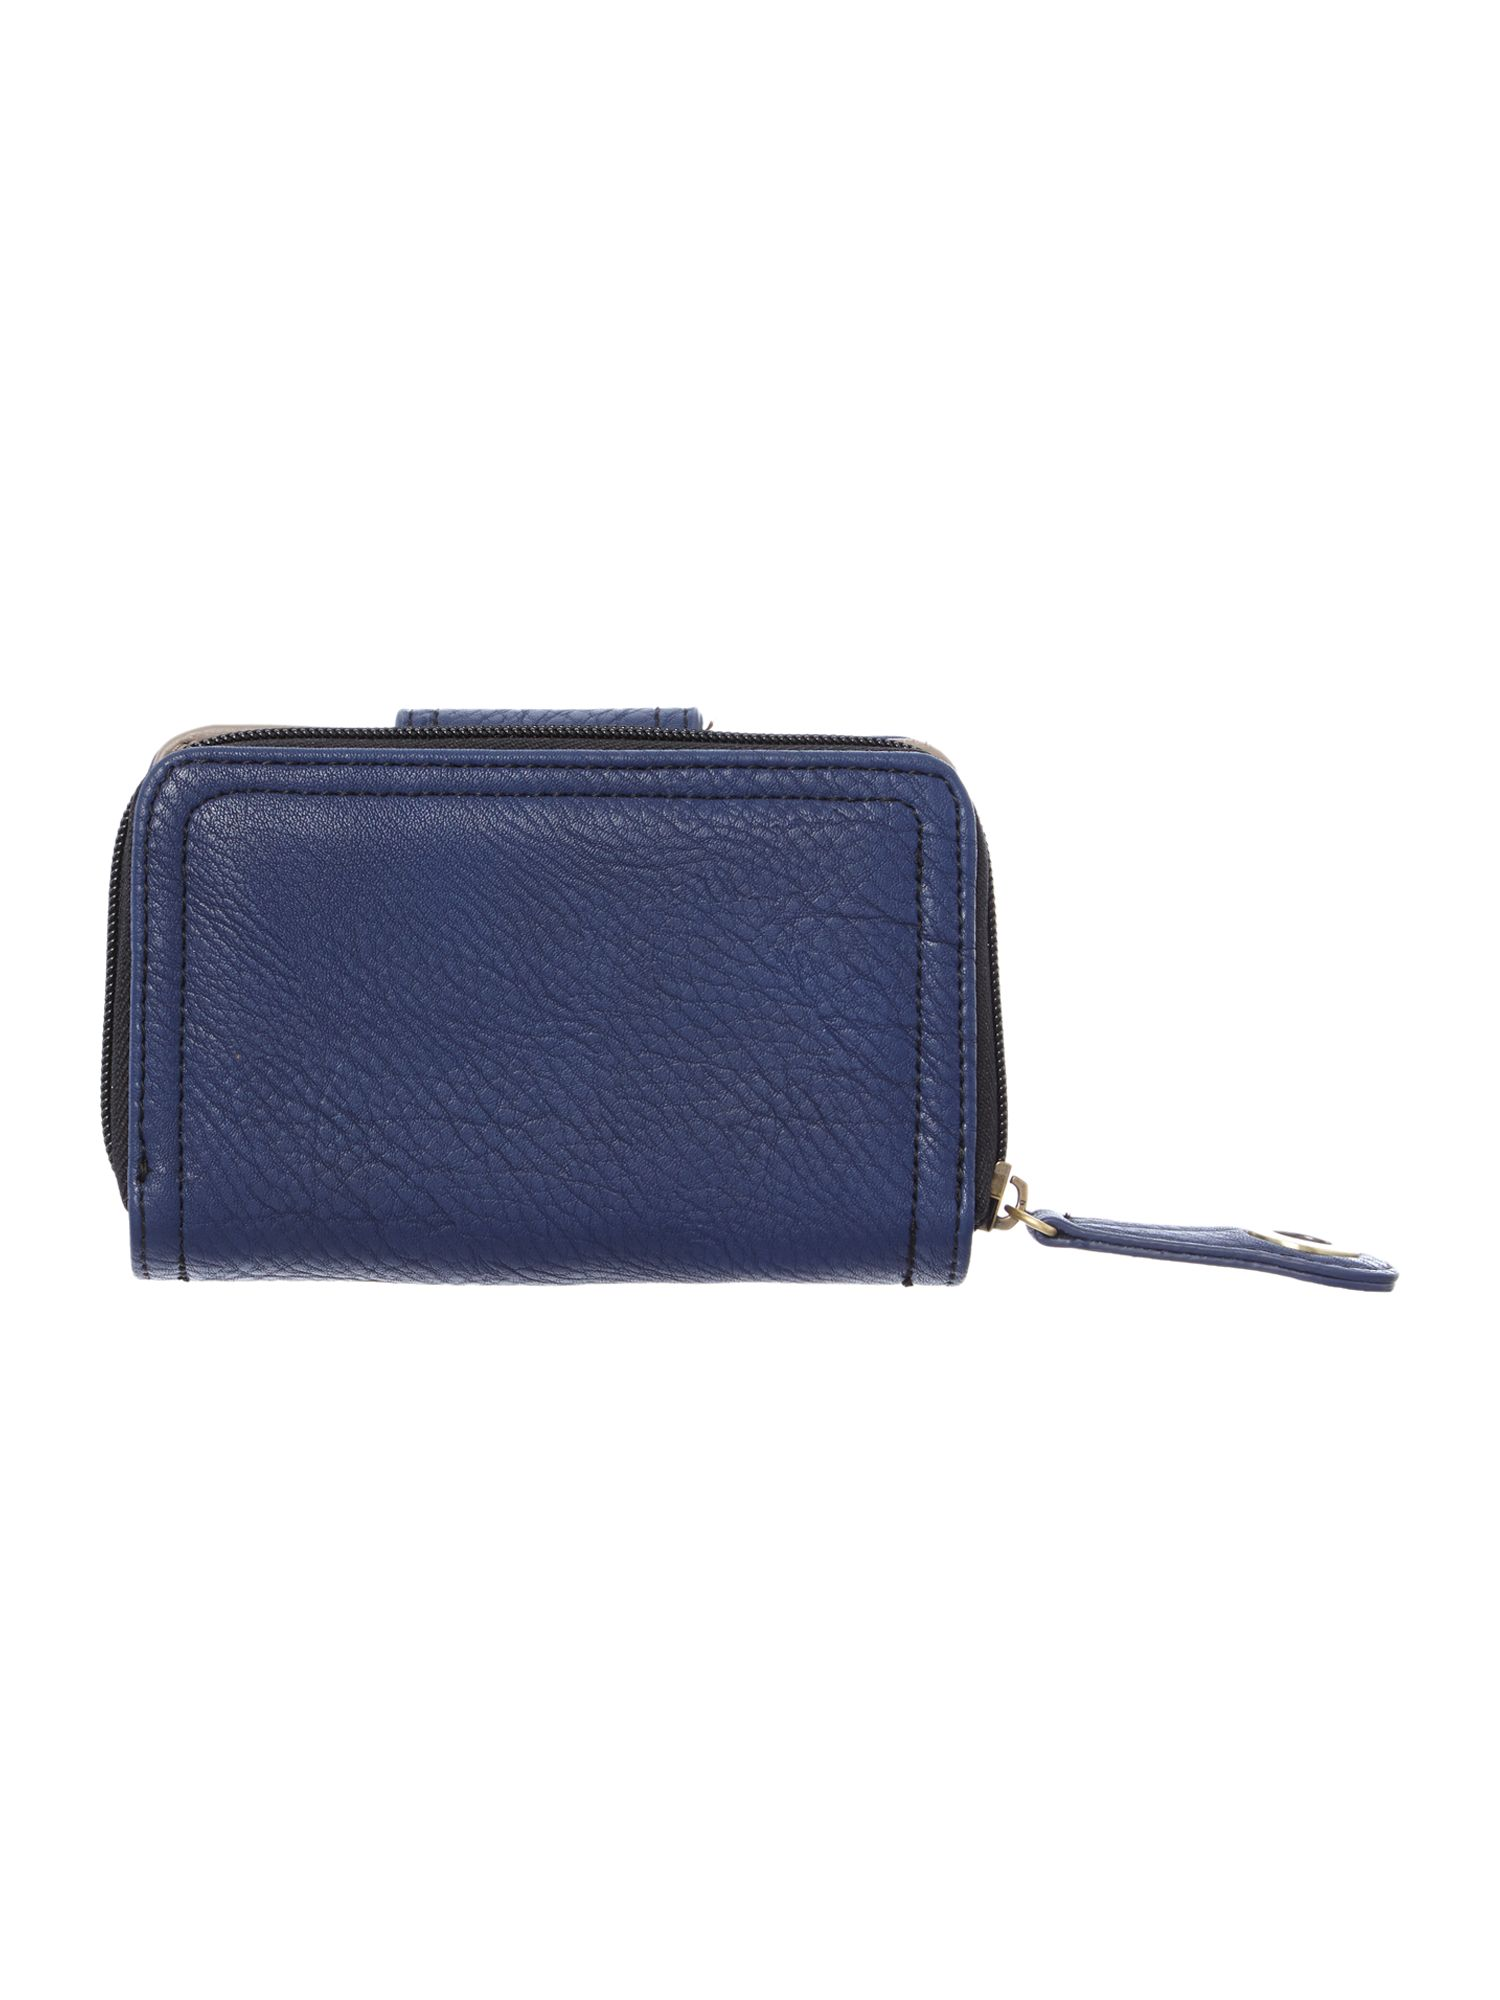 Takara small navy zip around purse